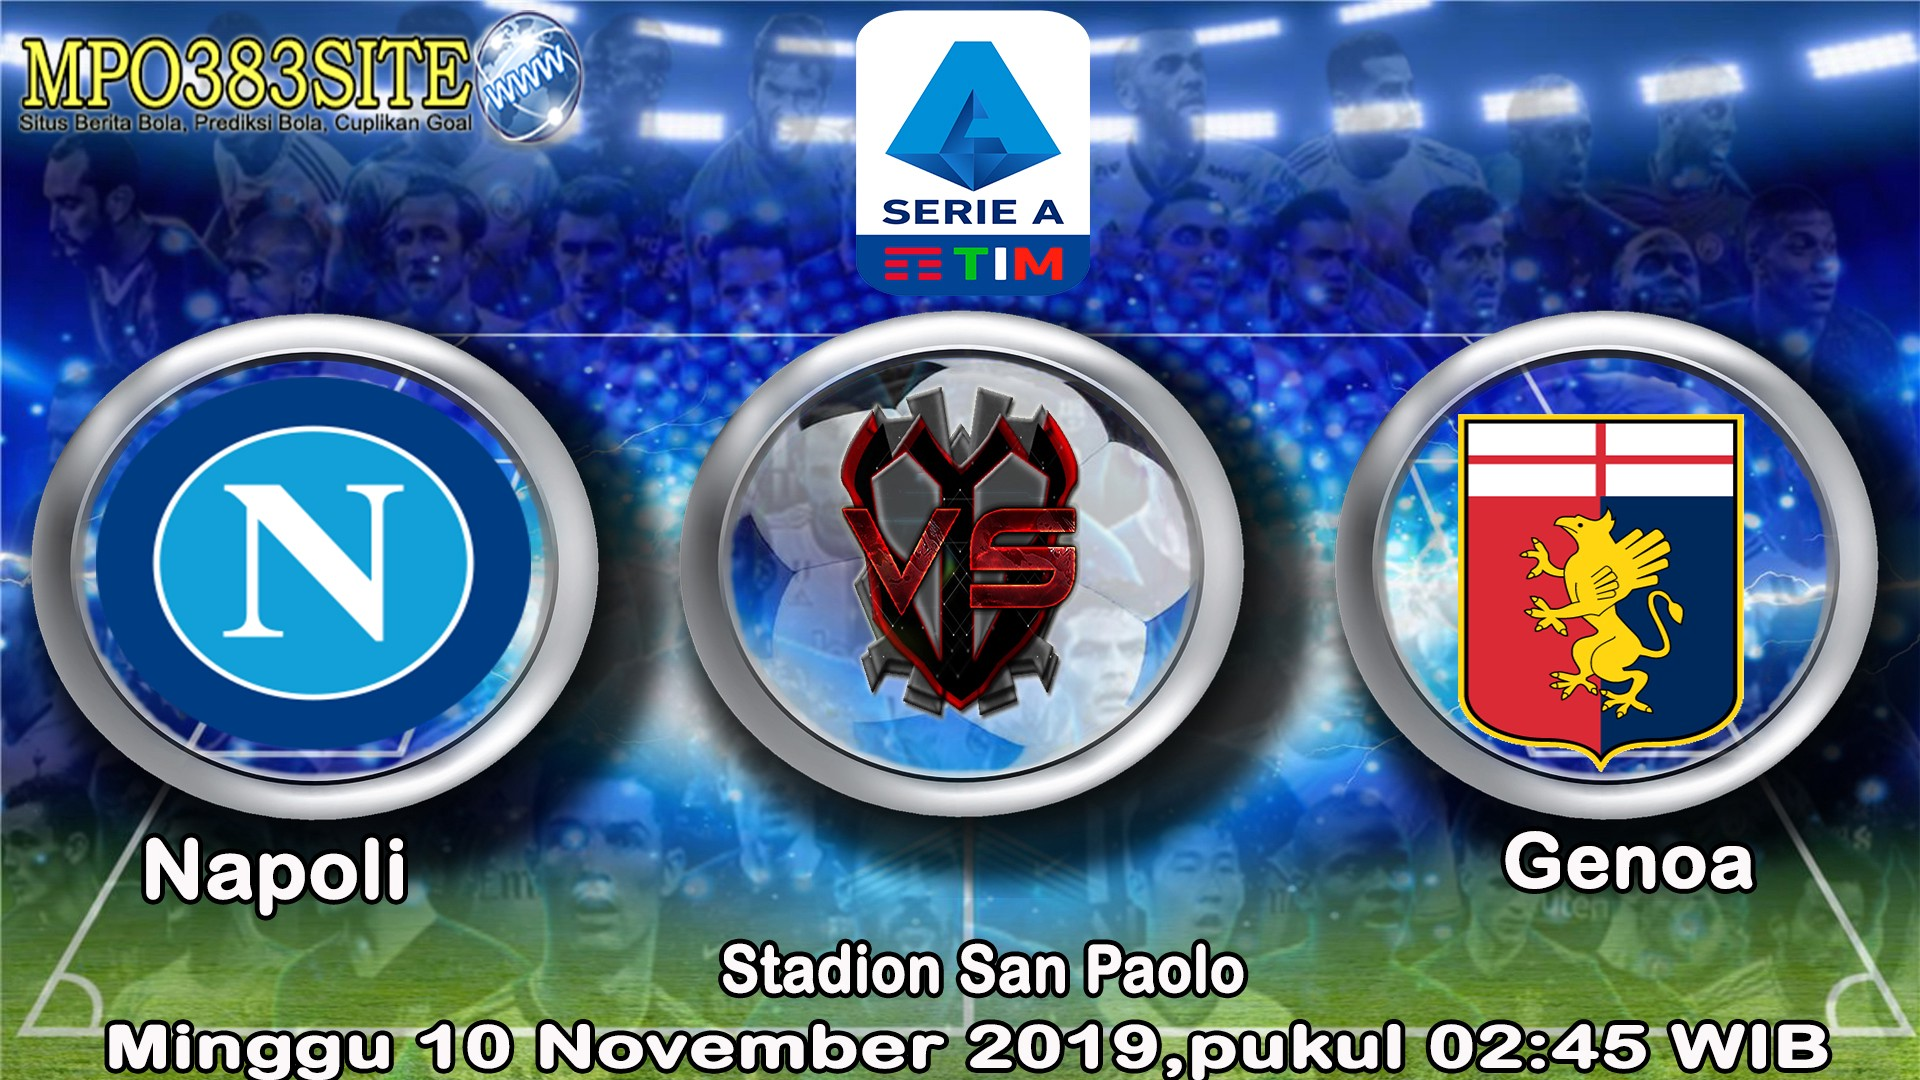 Prediksi Napoli Vs Genoa Minggu 10 November 2019 Mpo383site By Mpo383 Medium